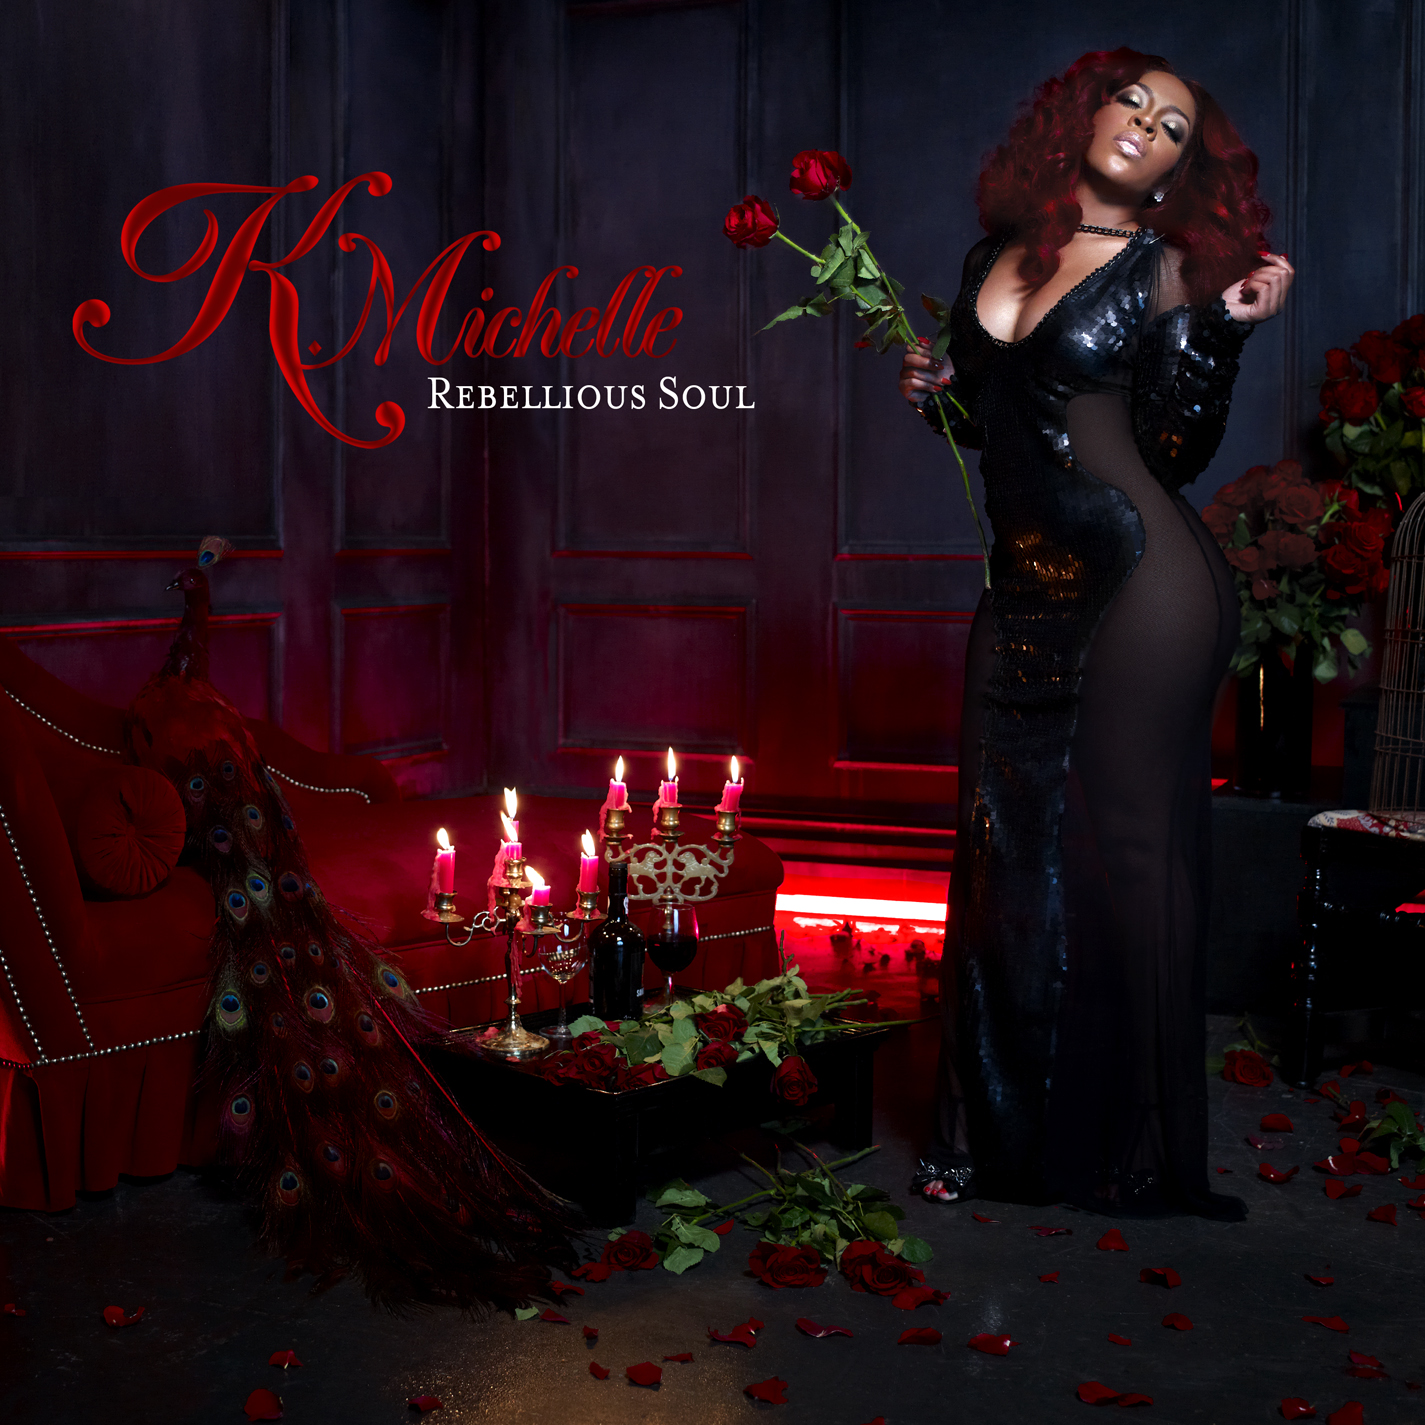 Exclusive: K.Michelle Talks New Album, Collabos With Nicki Minaj & Lil Kim, & More